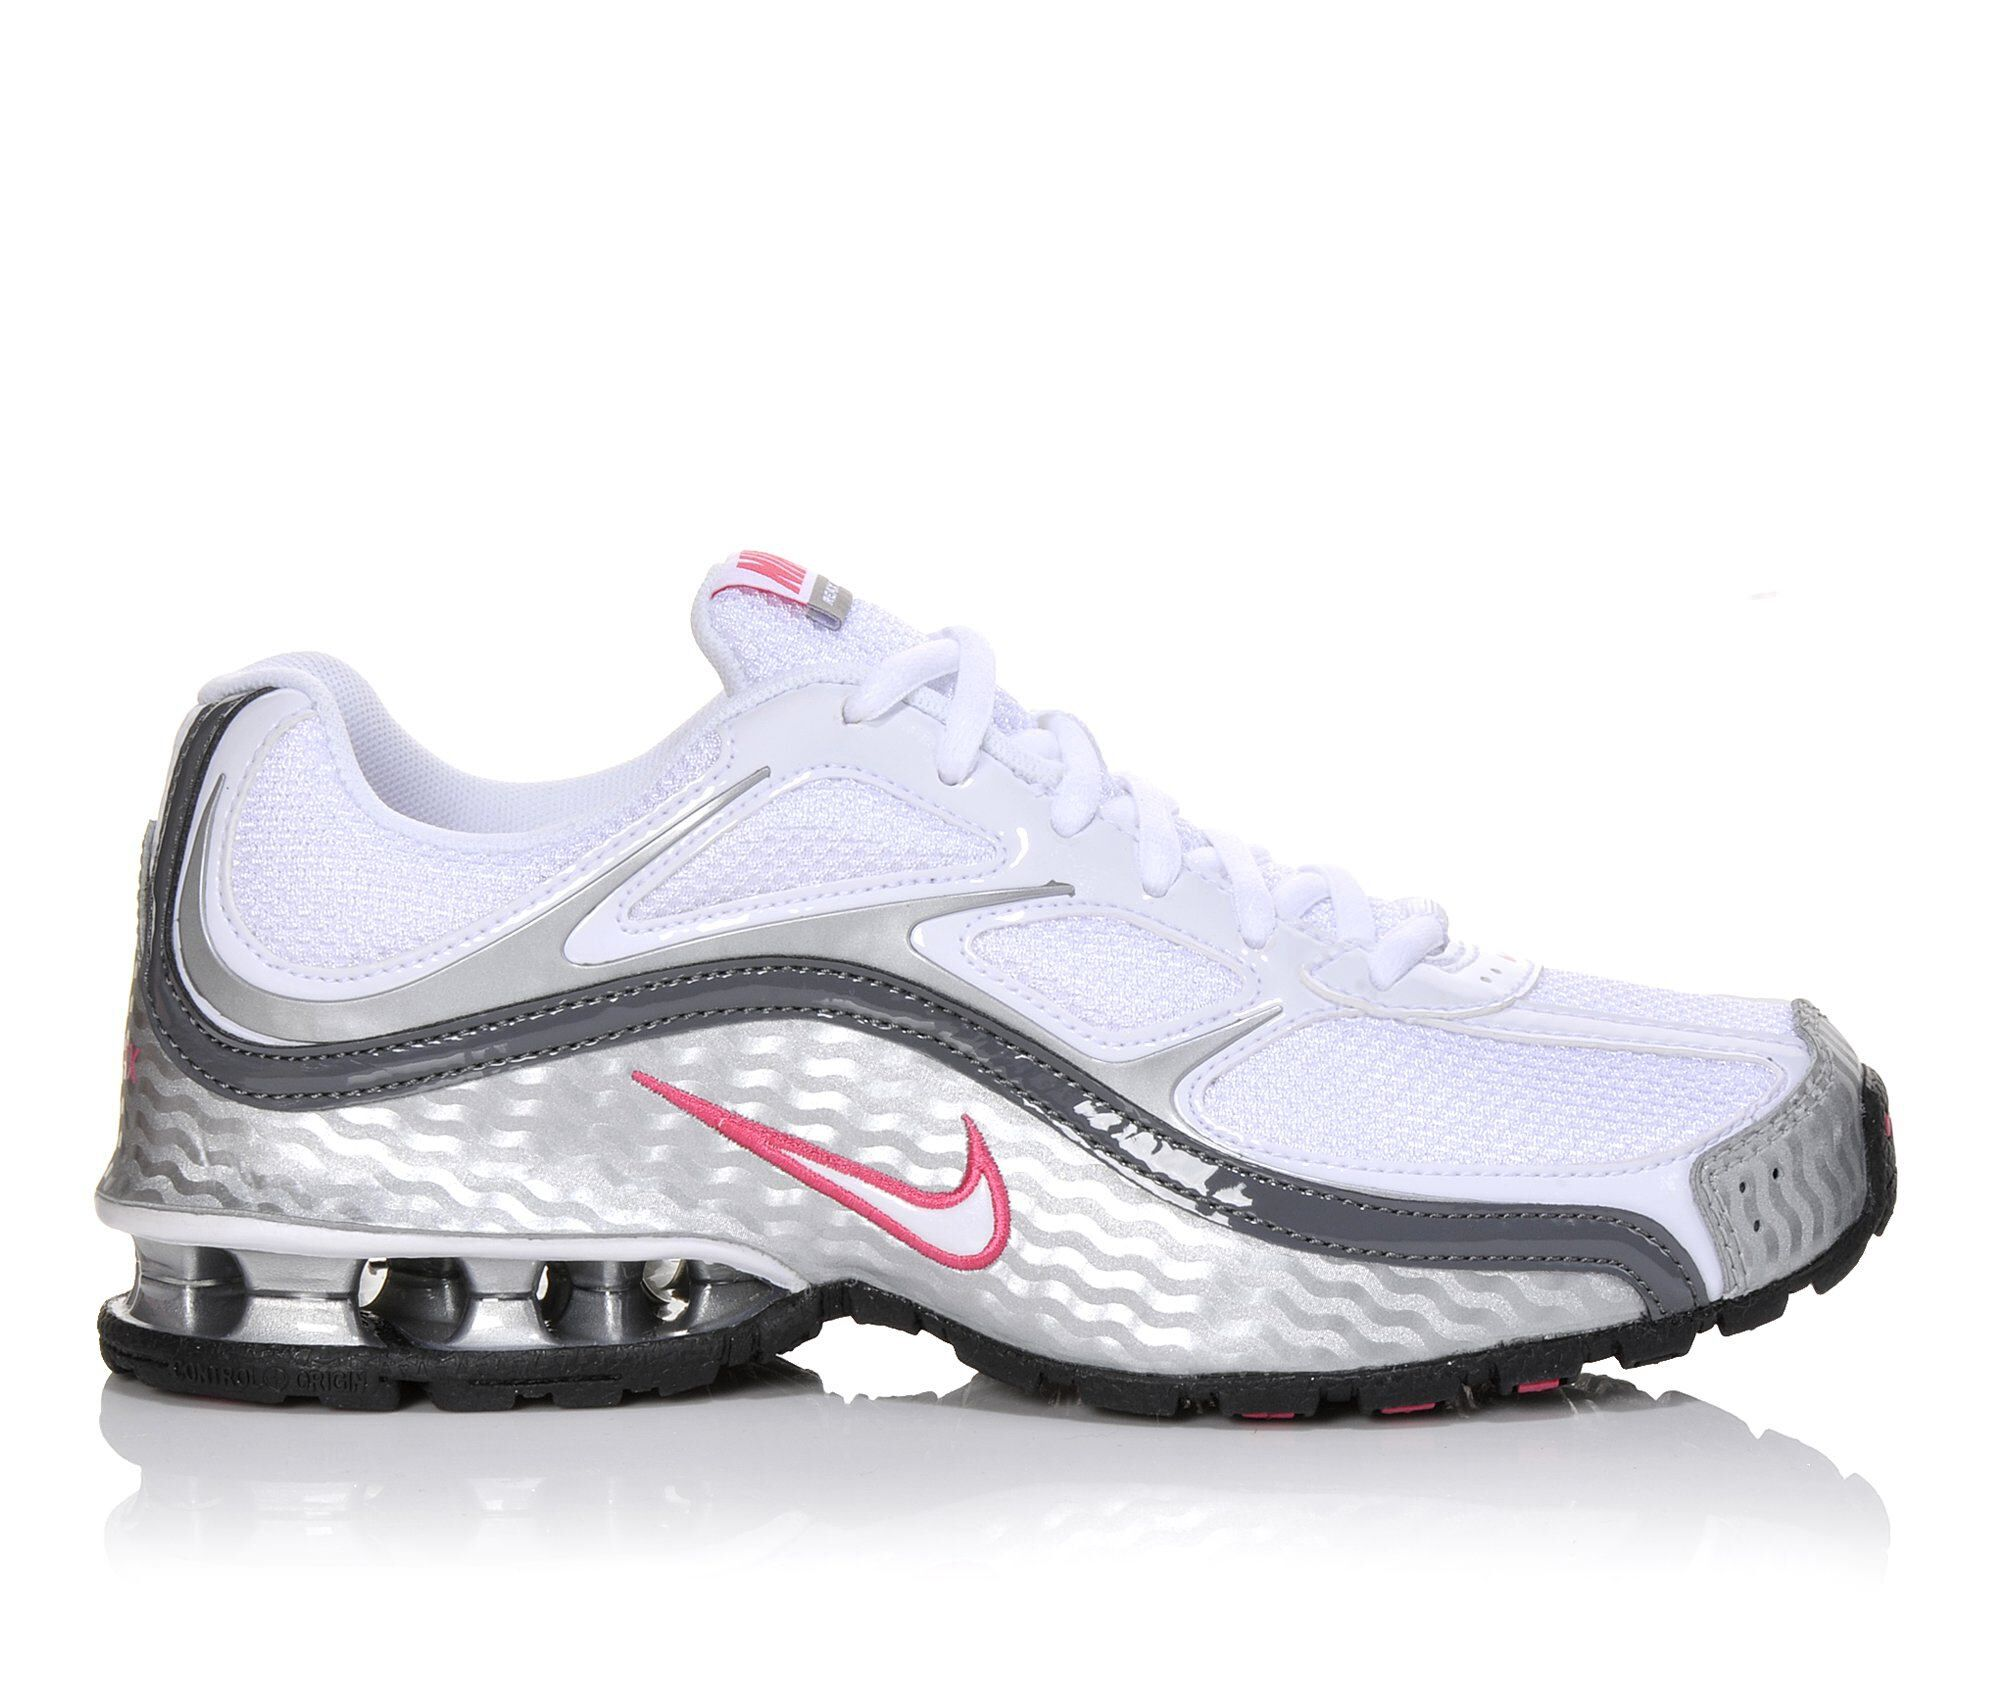 Get The Latest Women's Nike Reax Run 5 Running Shoes Wht/Pink/Silver